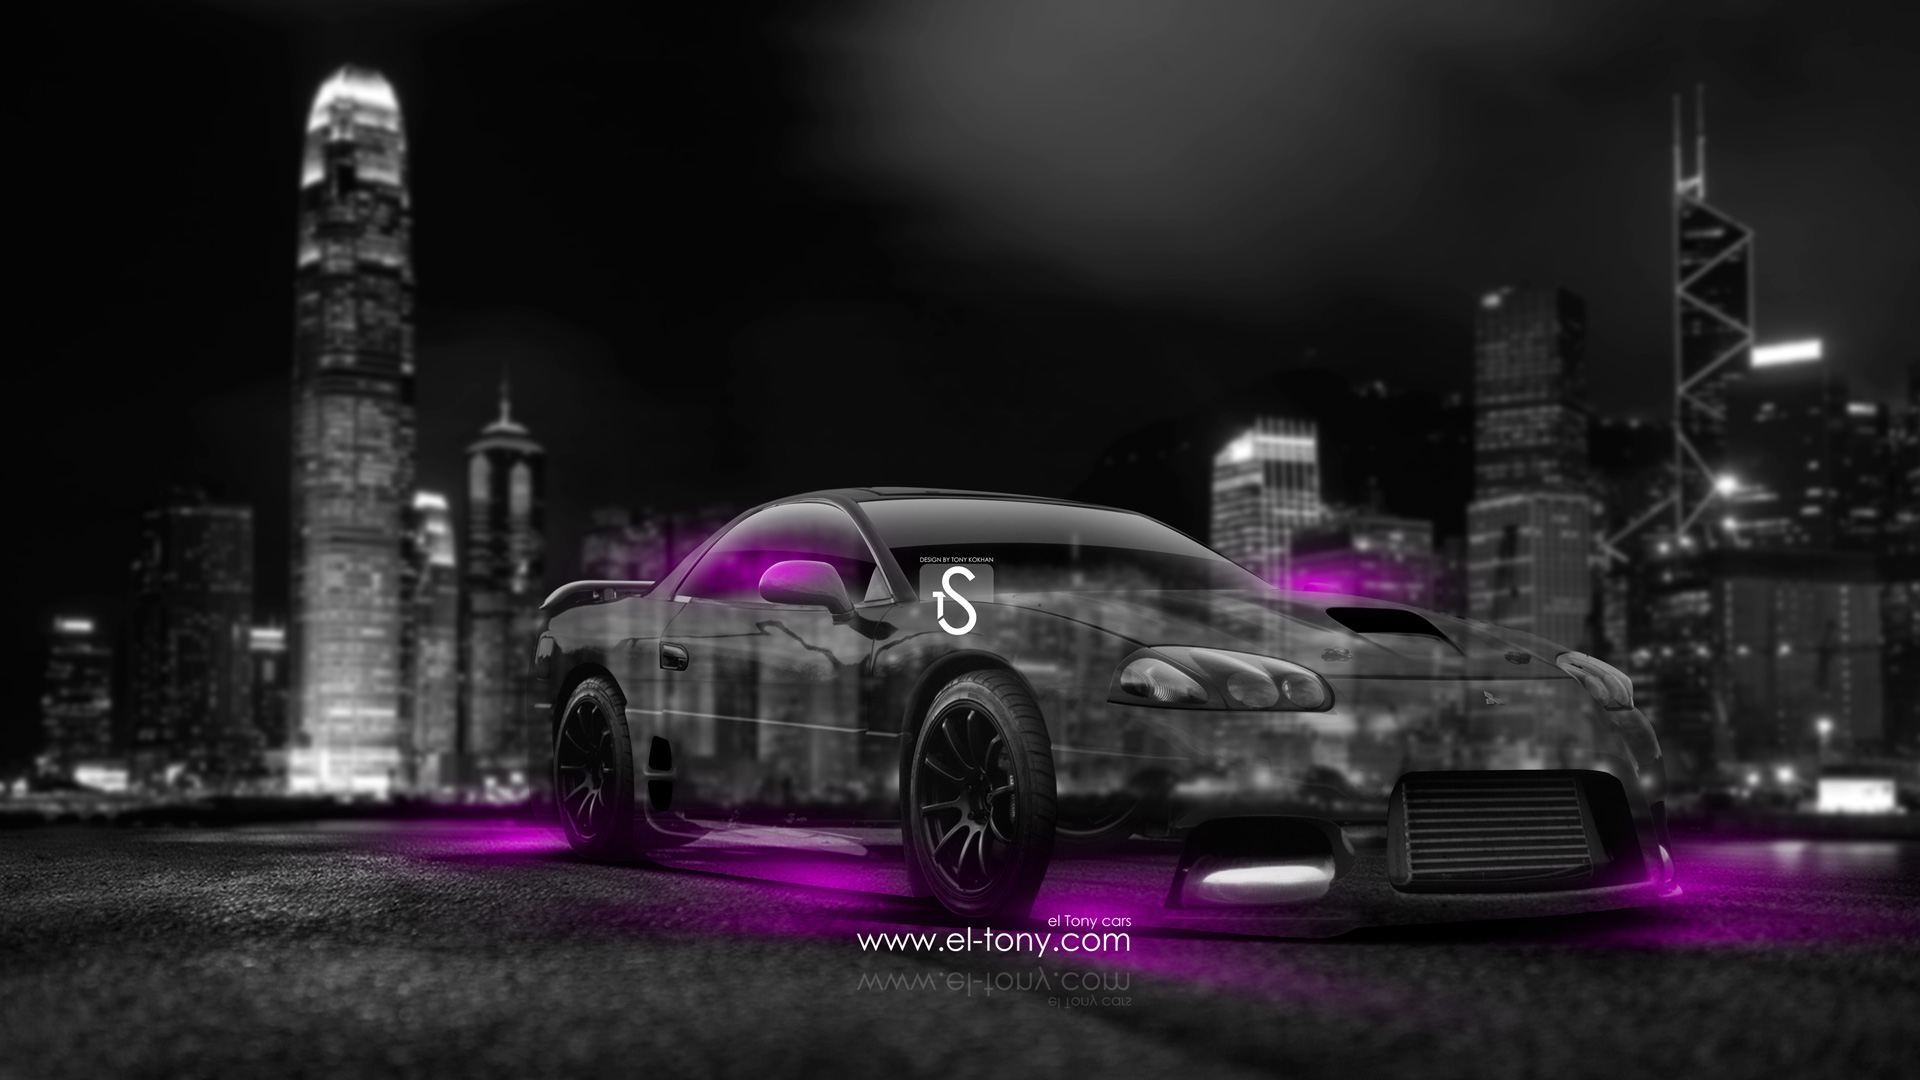 Mitsubishi-3000GT-JDM-Crystal-City-Car-2014-Pink-Neon-design-by-Tony-Kokhan-[www.el-tony.com]